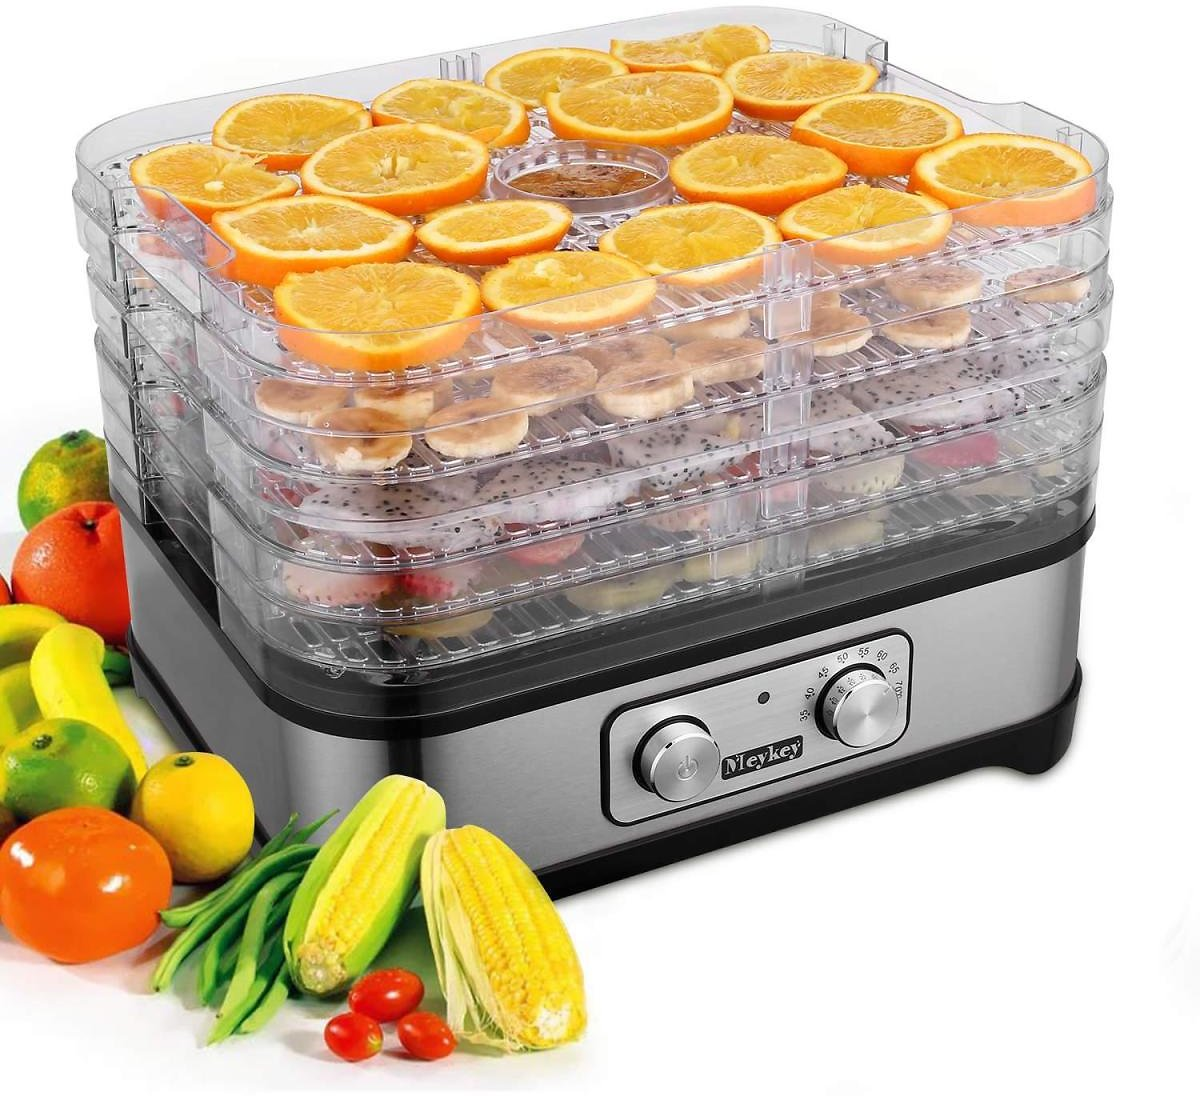 (Ships Free) Clearance Professional Electric Multi-Tier Food Dehydrator